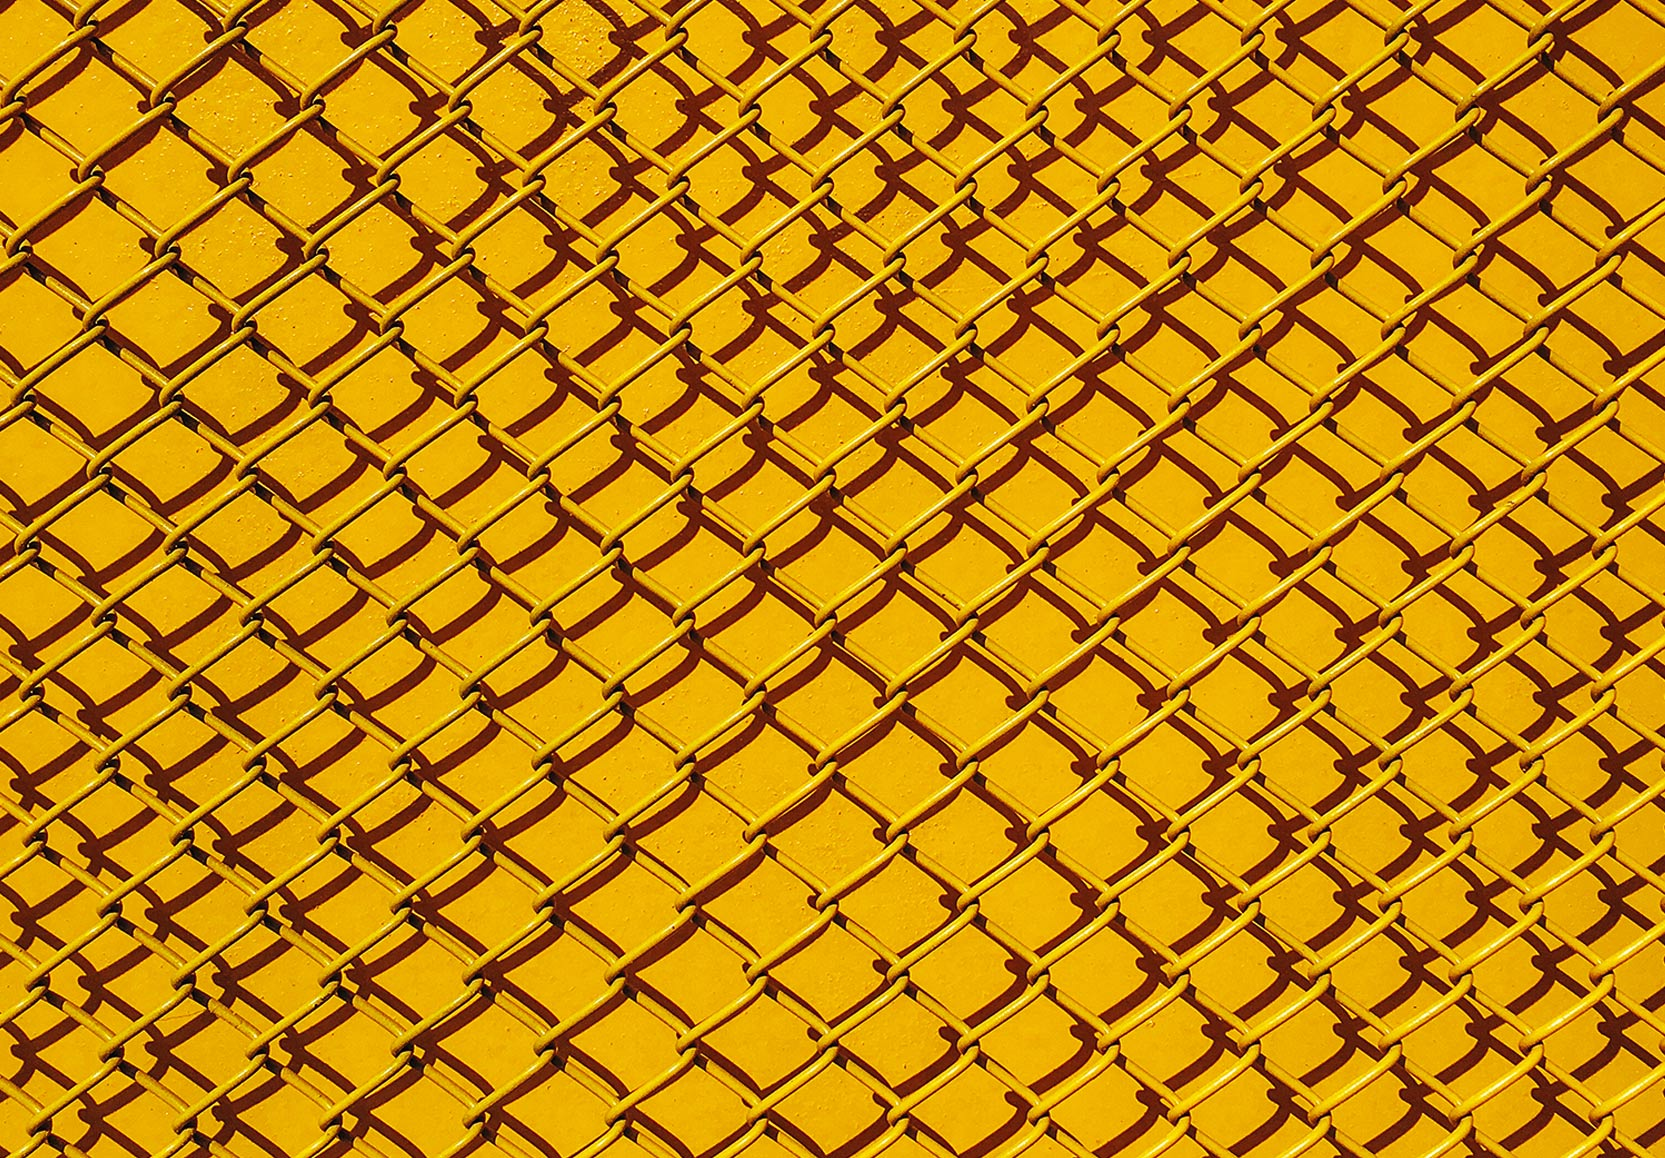 Yellow Fence Graphic